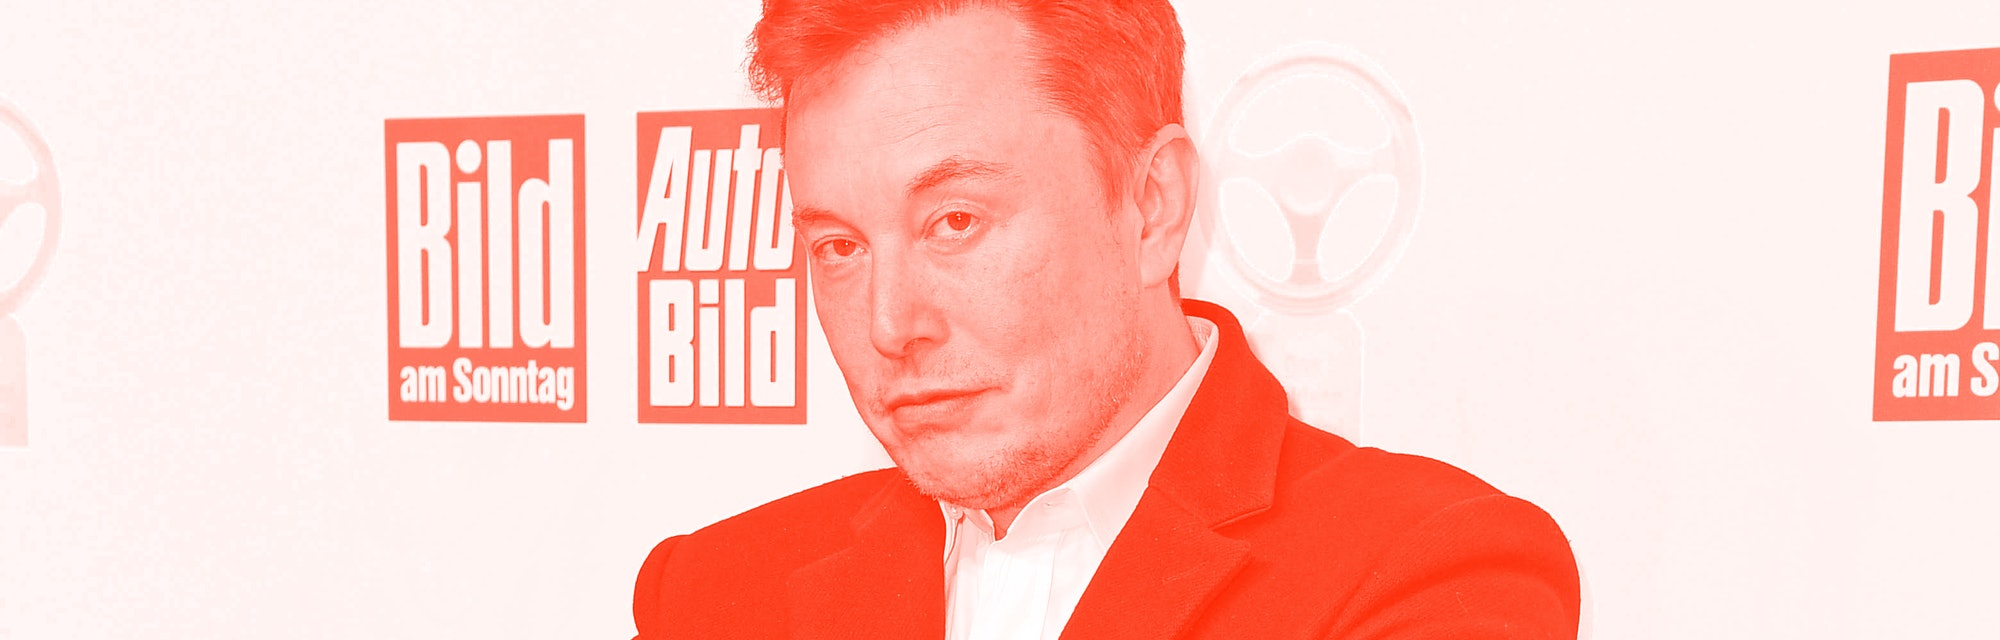 Elon Musk with his arms crossed and his eyebrow raised.